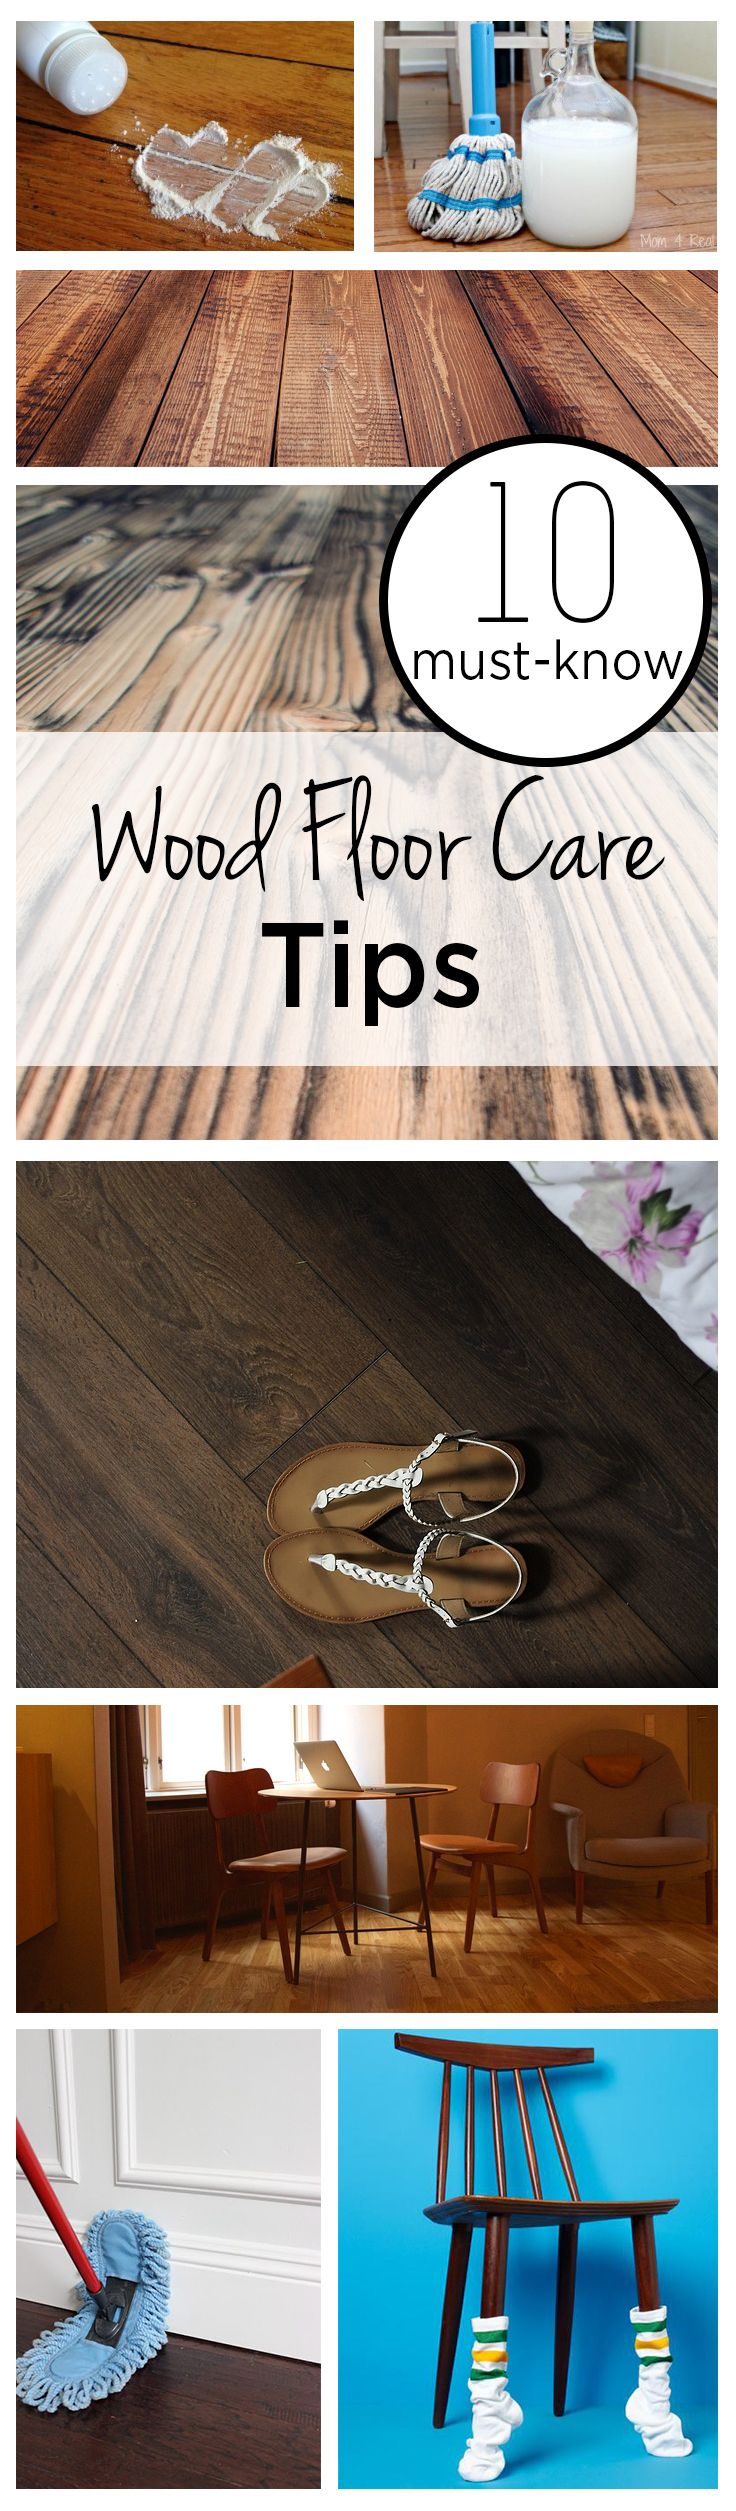 Wood Floor Care Tips, Wood Floor Care Hacks, How to Care For a Wood Floor, Cleaning Tips, Home Cleaning, DIY Clean, Cleaning Hacks, Popular Pin, Wood Floor Care